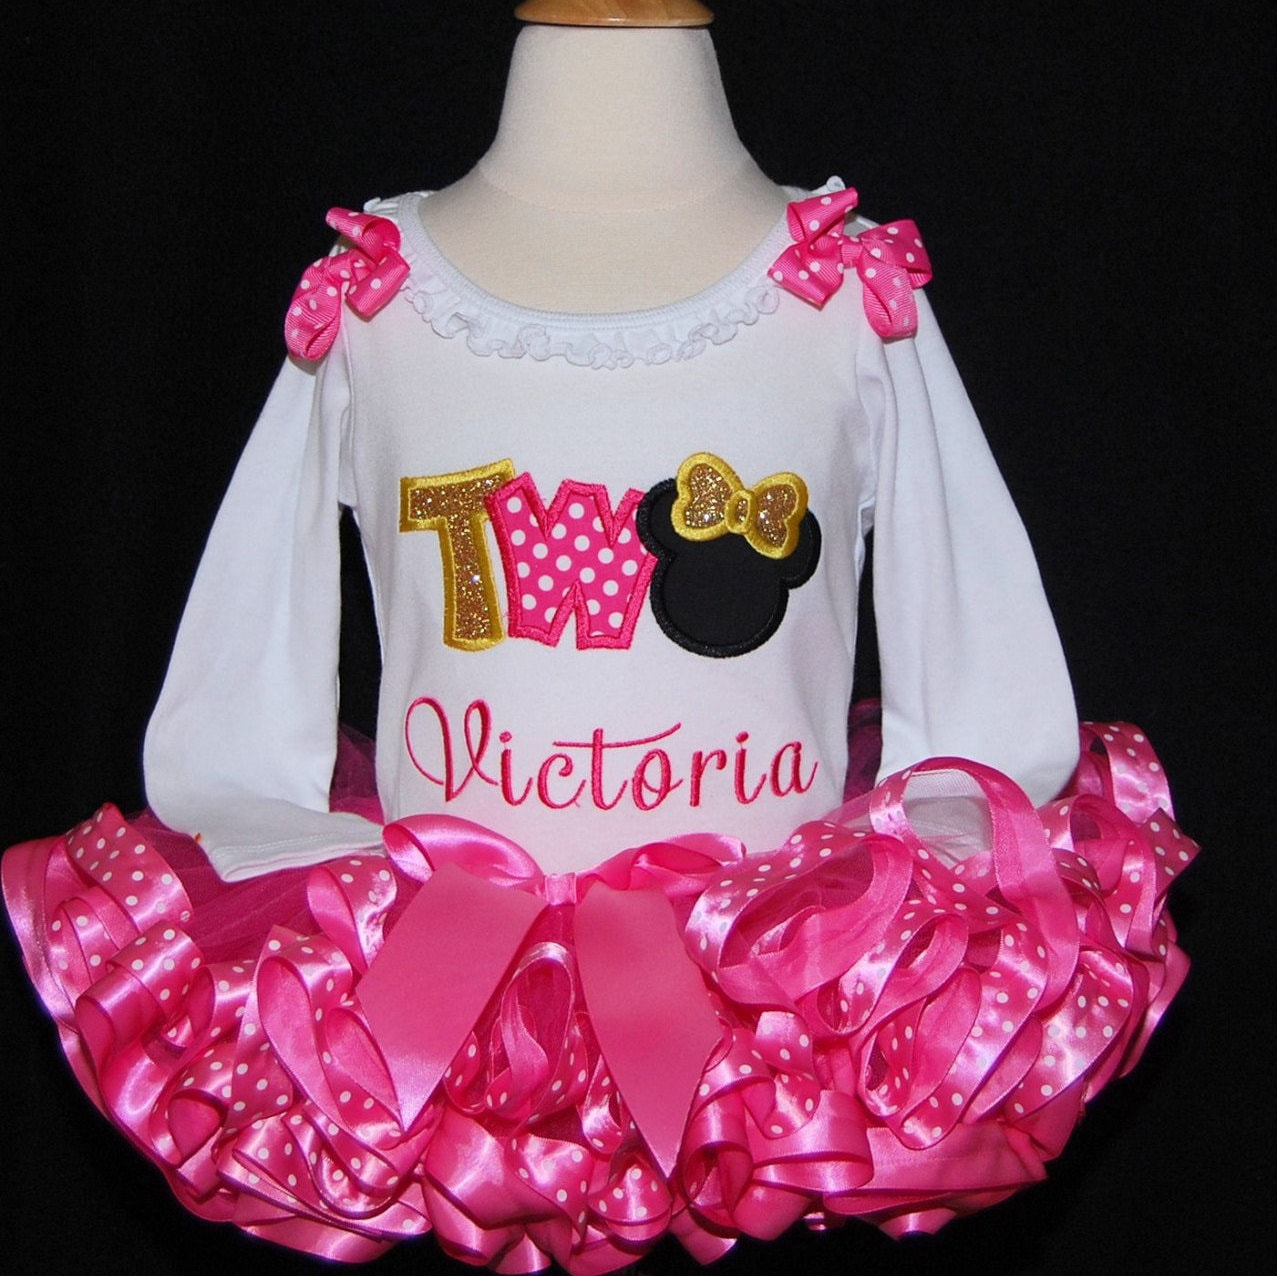 Minnie Mouse 2nd birthday outfit 2nd birthday girl outfit  minnie mouse 2nd birthday outfit ribbon trimmed tutu personalized toddler tutu